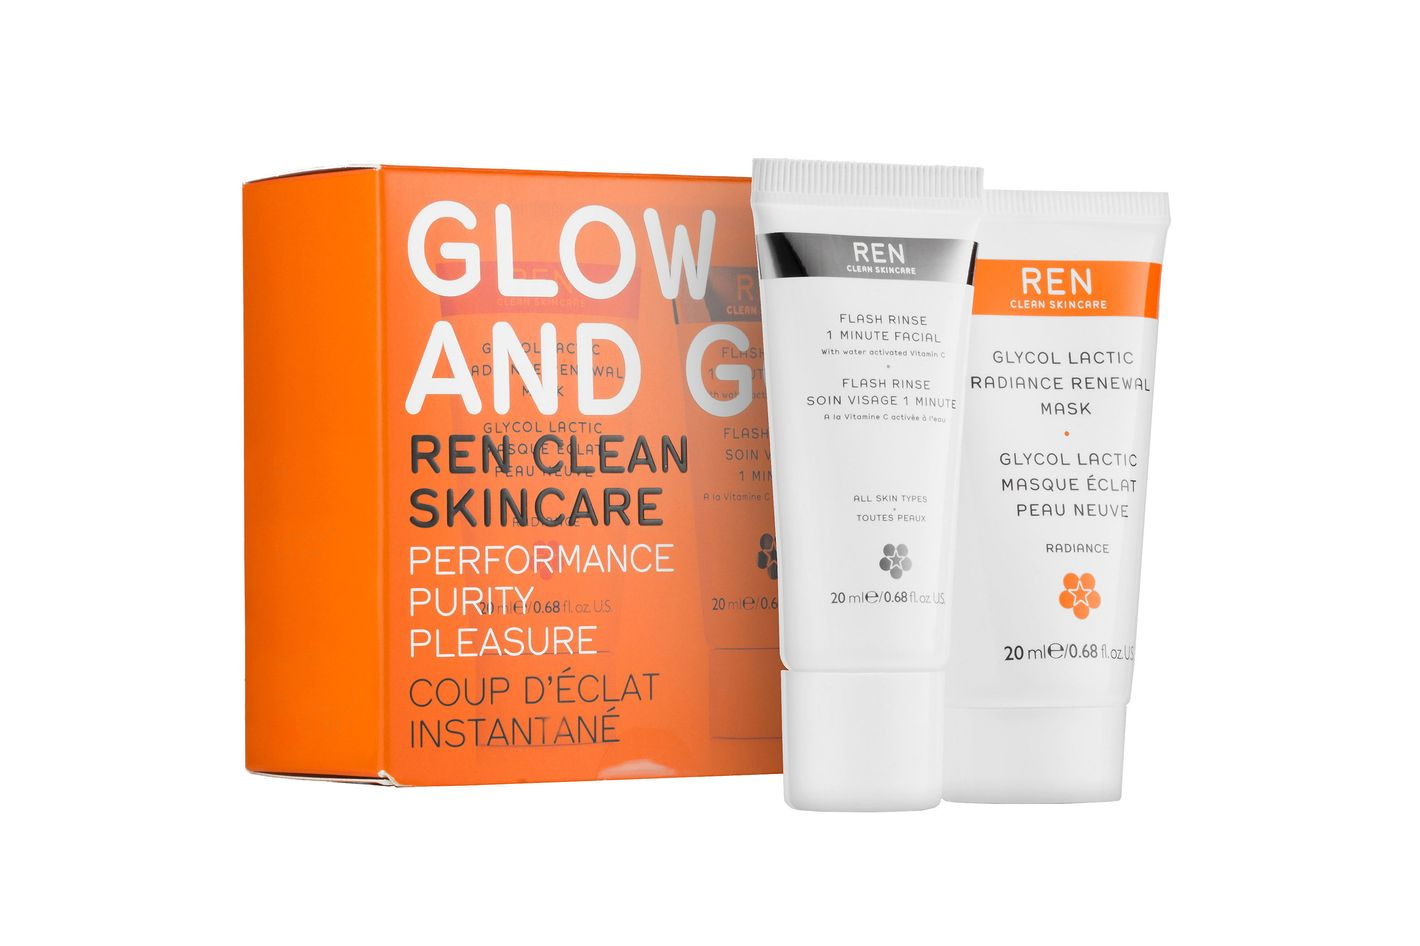 REN Glow and Go!